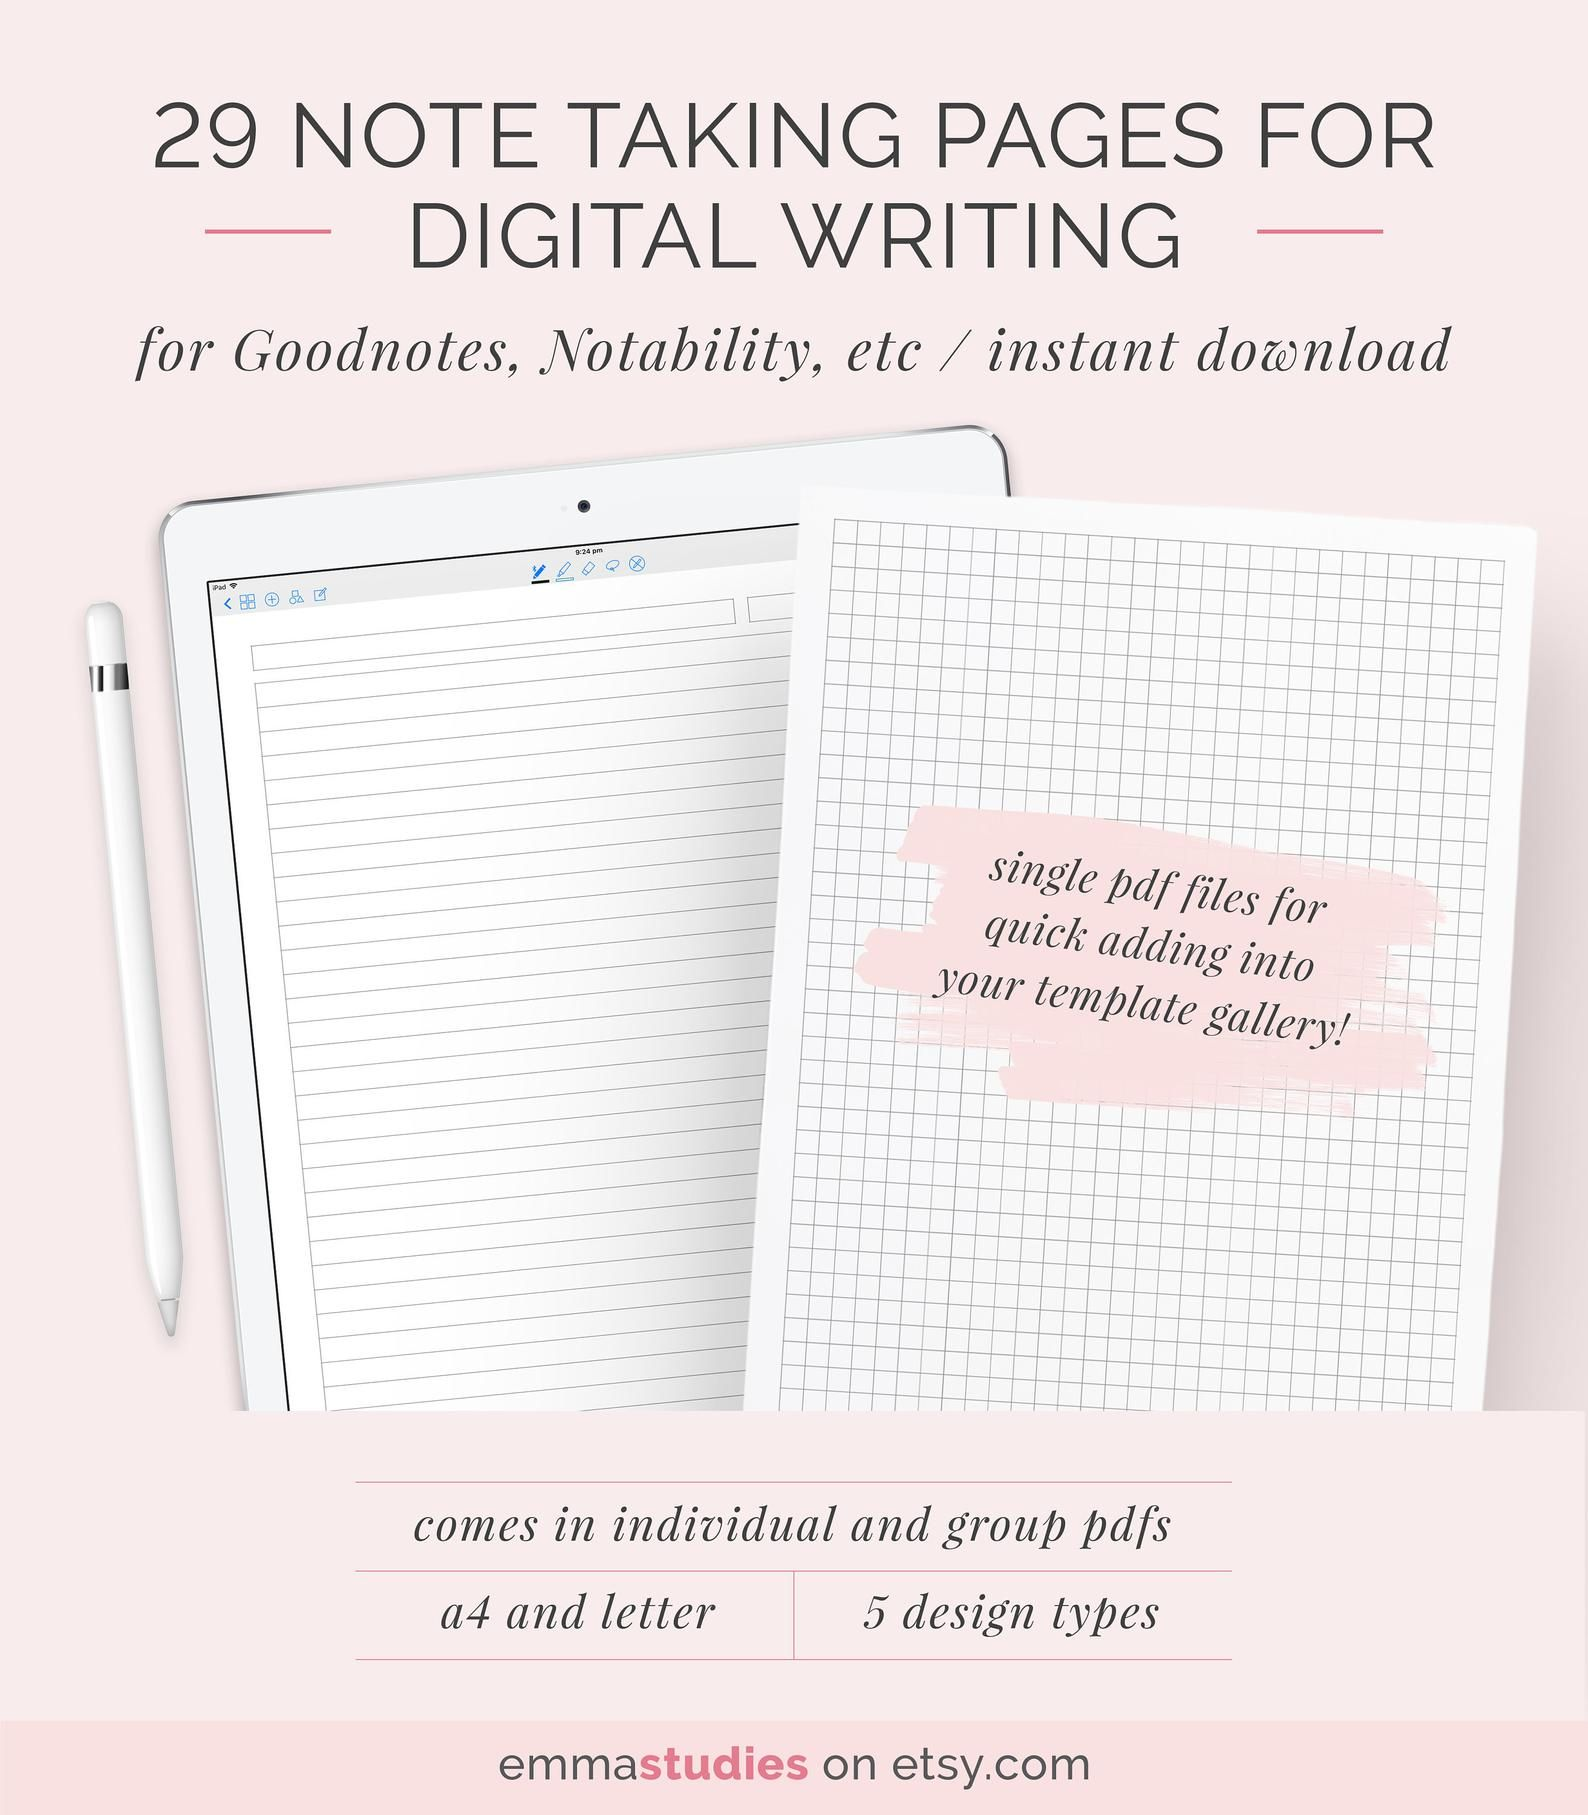 Digital Note Taking Paper Template Goodnotes Notability Ipad Tablet Lined Ruled Grid Dotted Cornell College Notebook Pages A4 Letter Paper Template Notability Ipad Note Taking